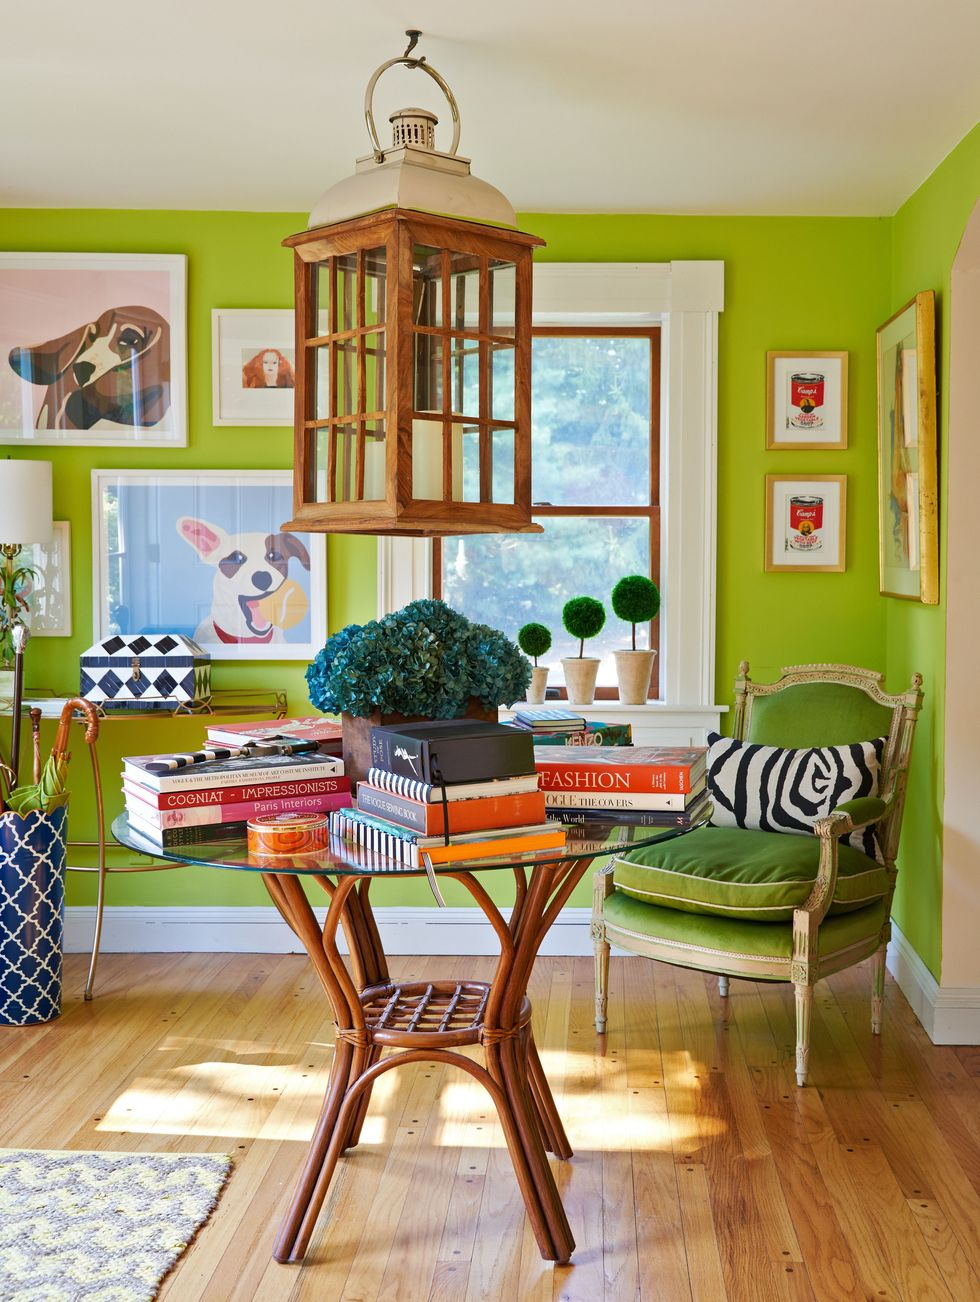 TOP 10 HOME DECORATING TRENDS THAT WILL SHAPE YOUR HOUSE IN 2017